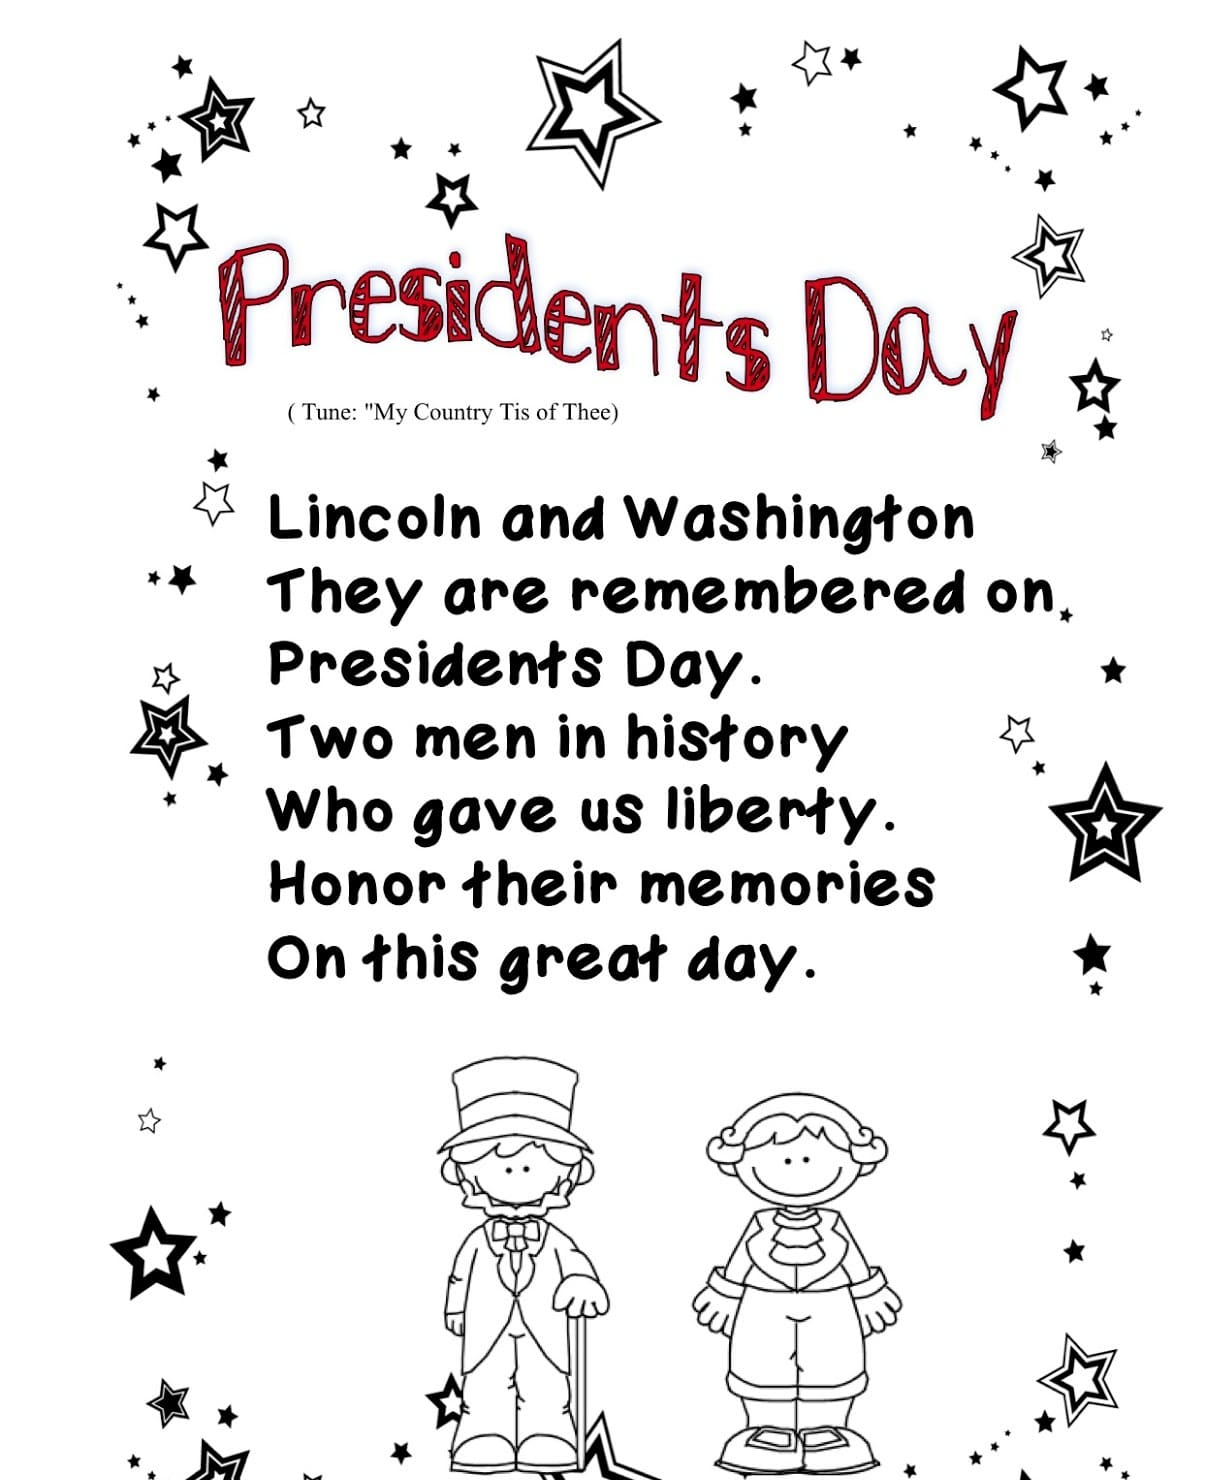 Presidents Day Poem Free Quote Images Hd Free